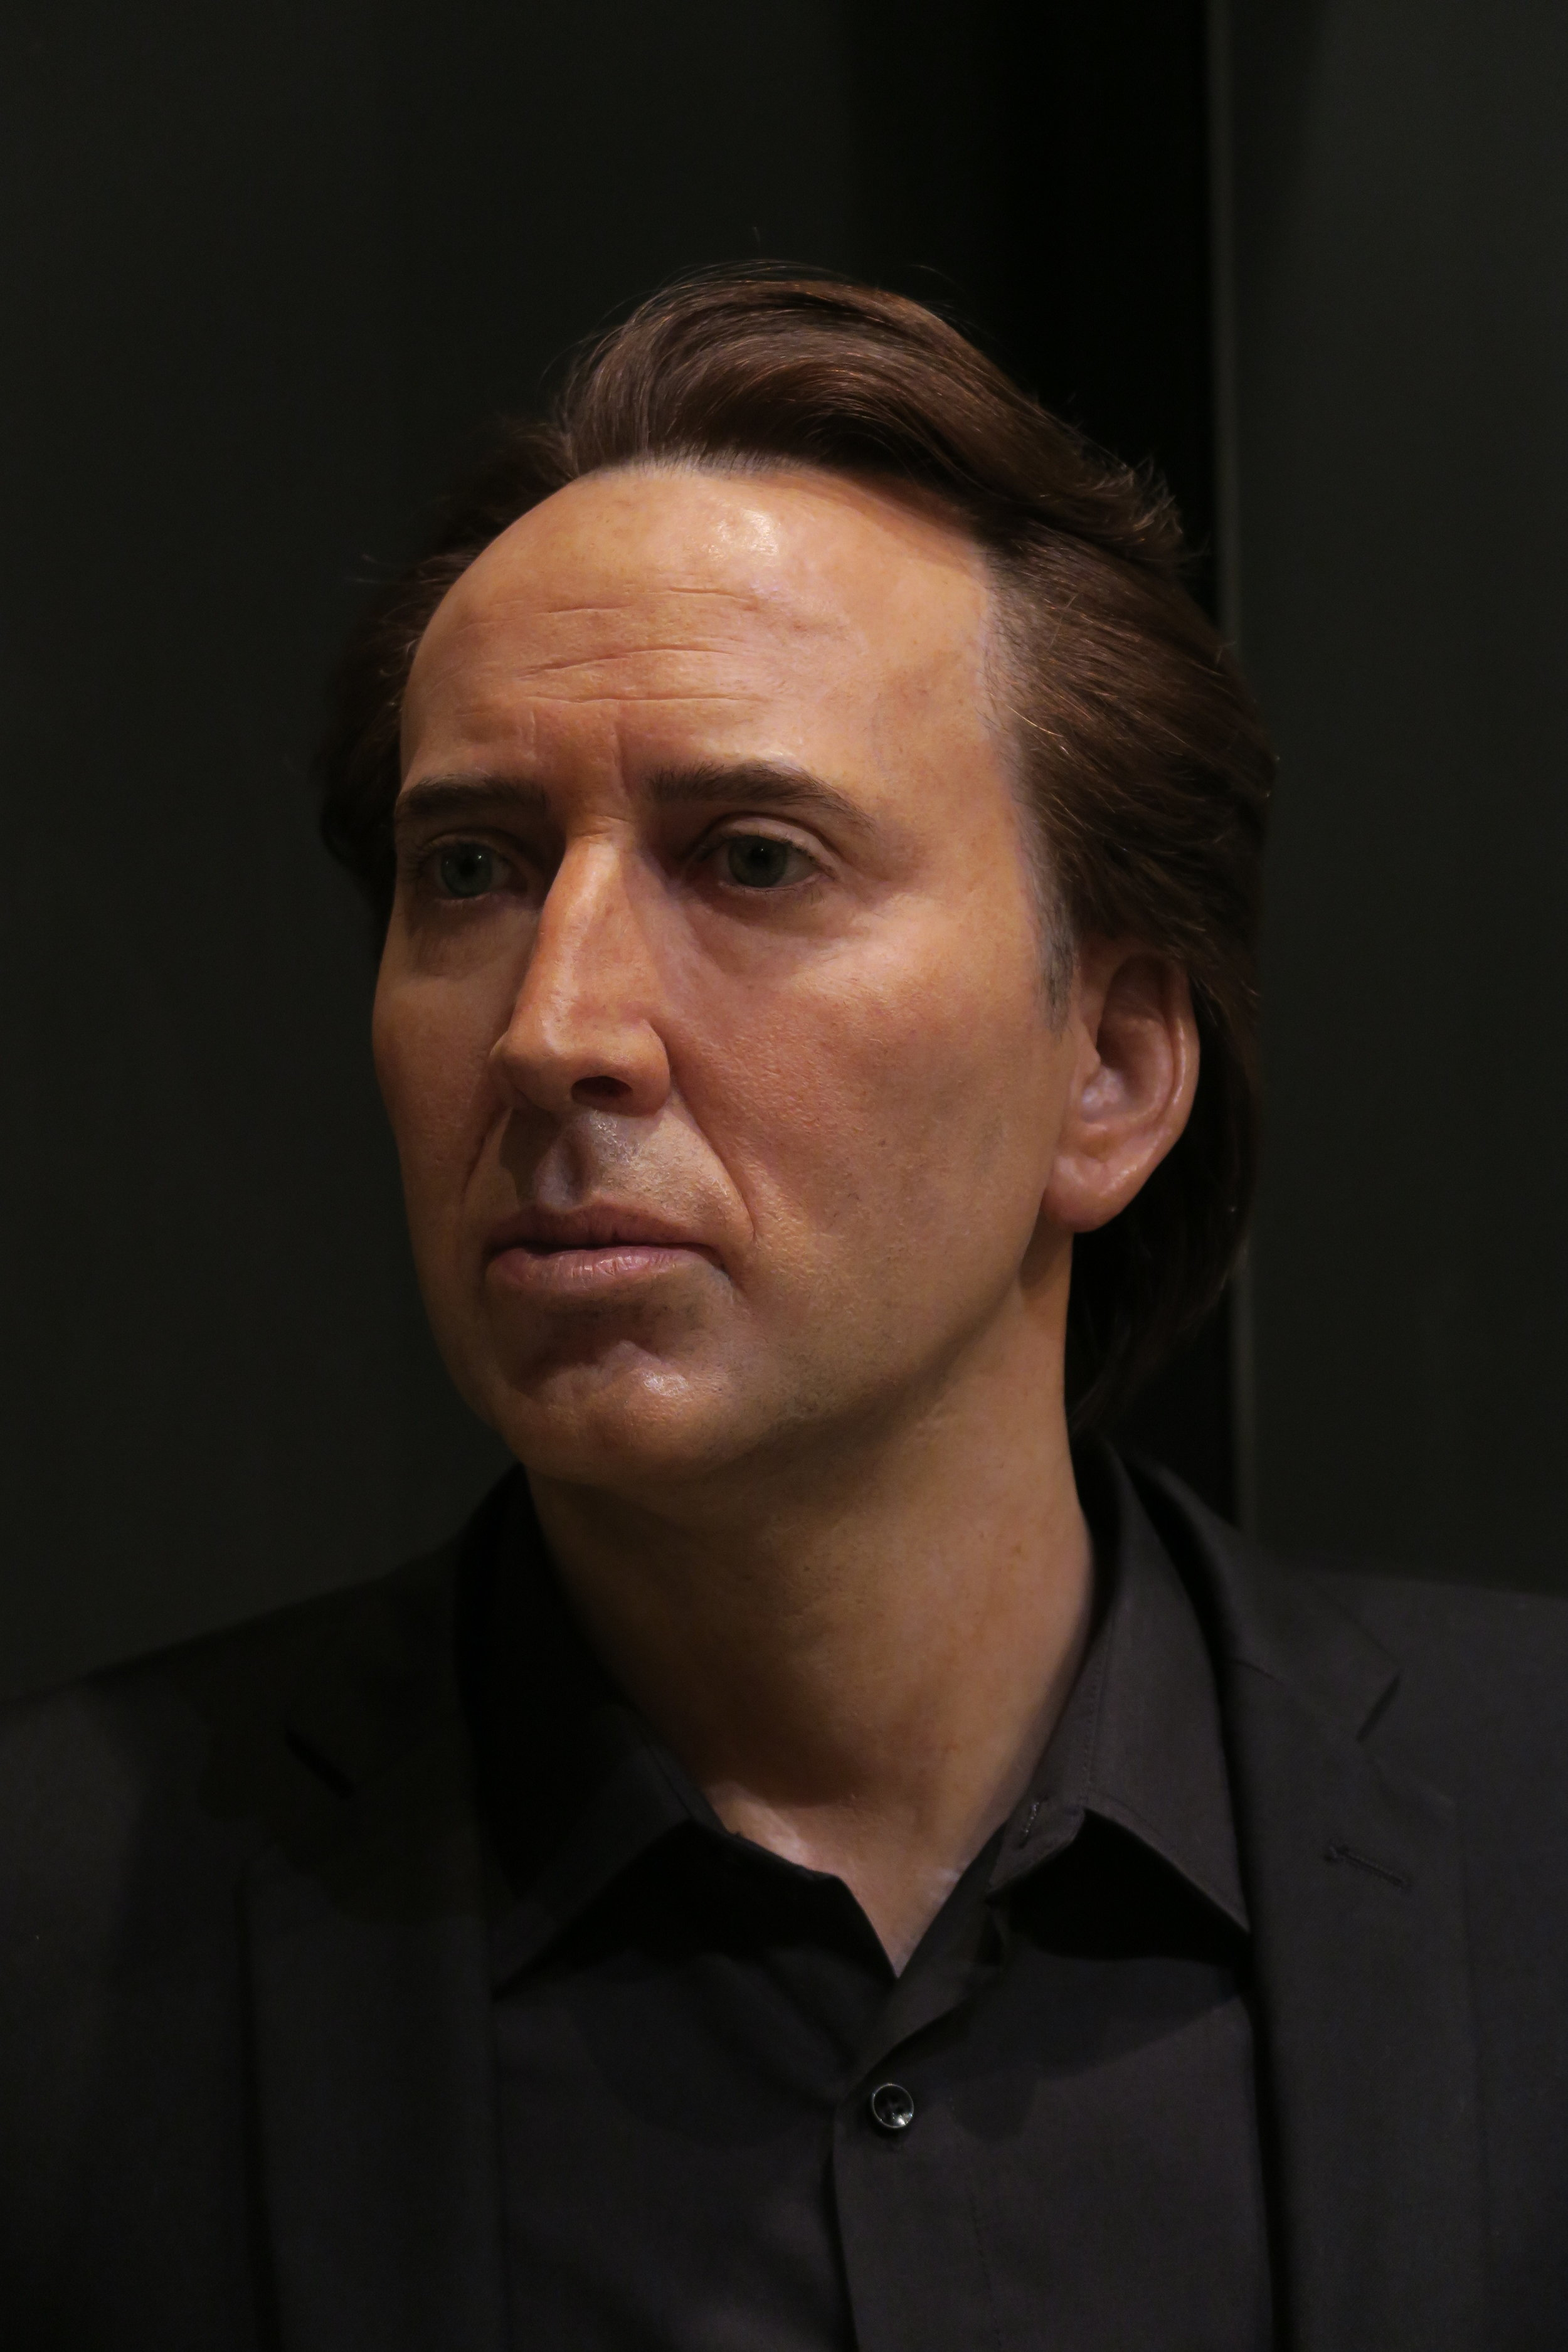 Wax sculpture - Modelling by Eric Saint Chaffray - Nicolas Cage - Credit Musée Grévin